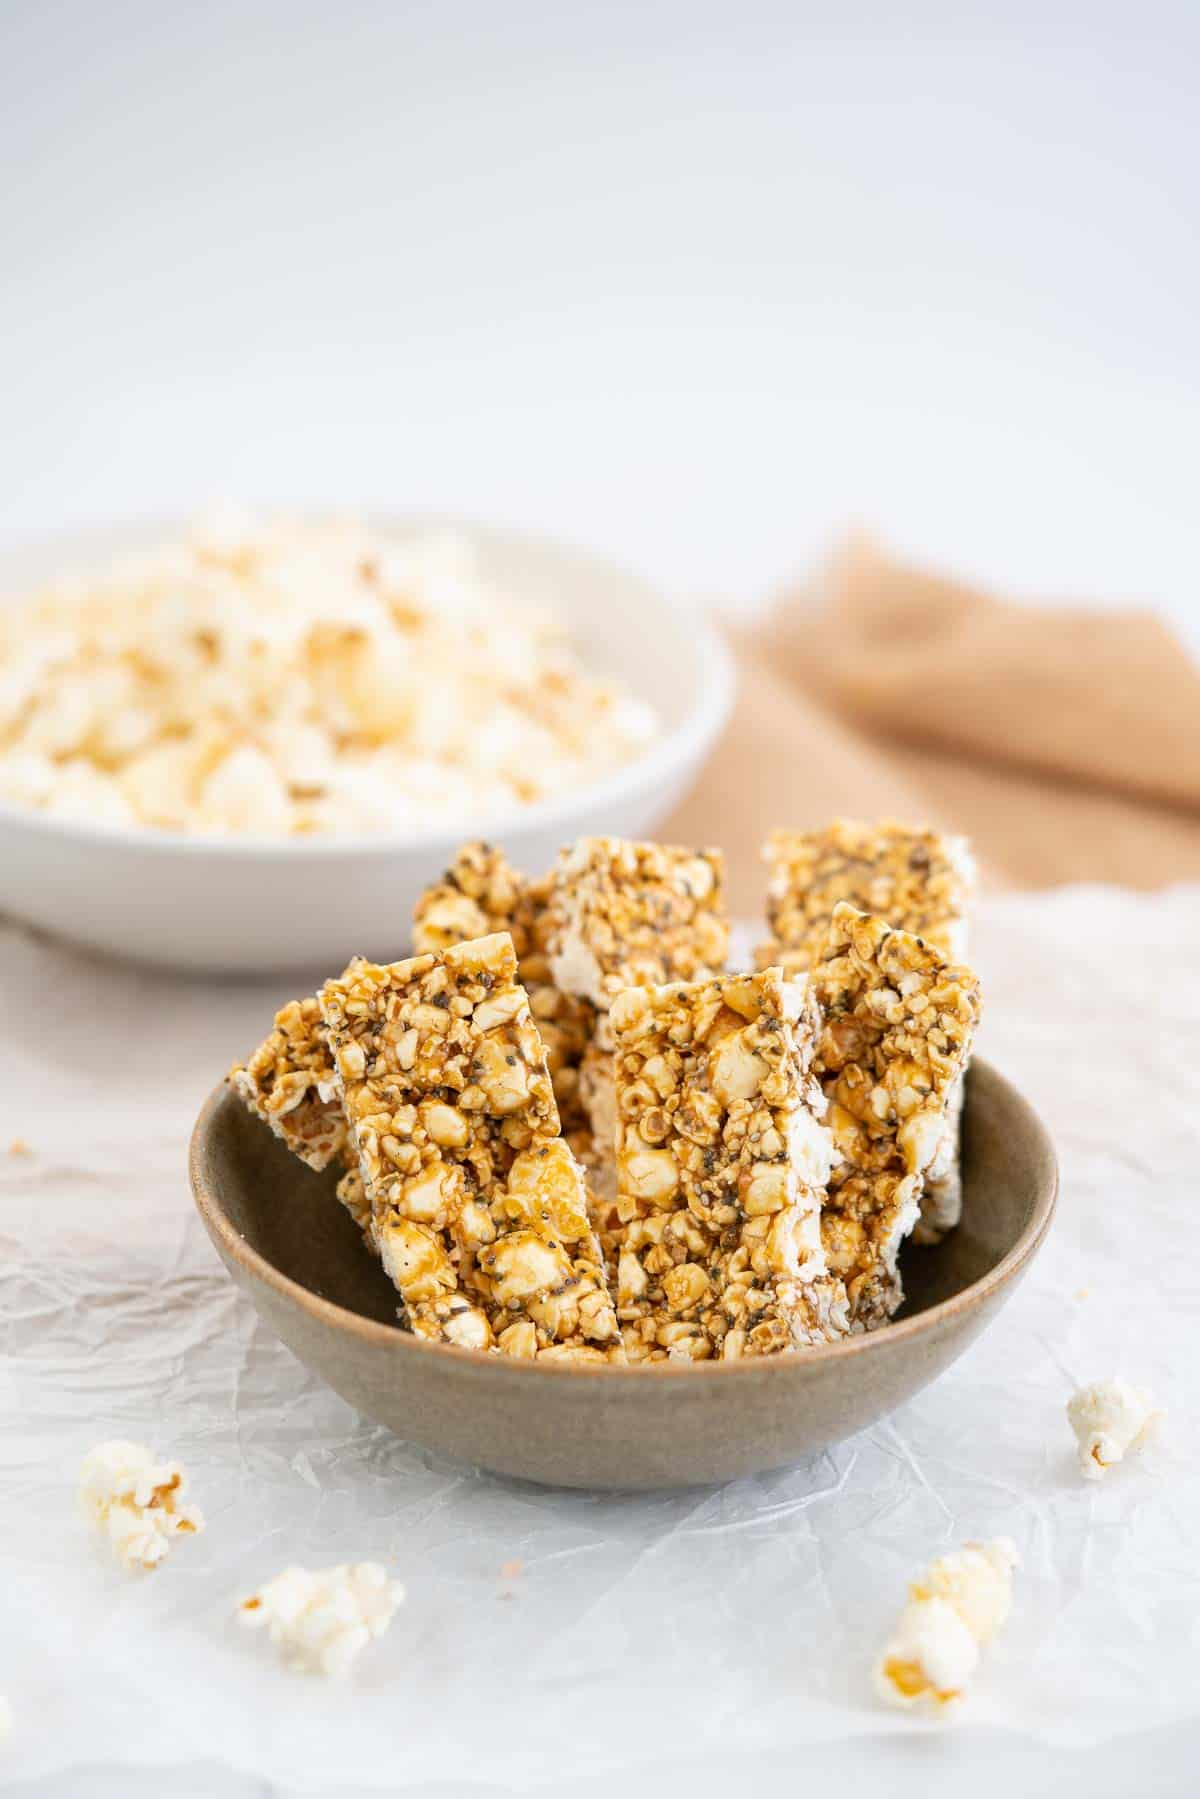 Brown ceramic bowl filled with 6 popcorn bars, a bowl of popcorn in the background.